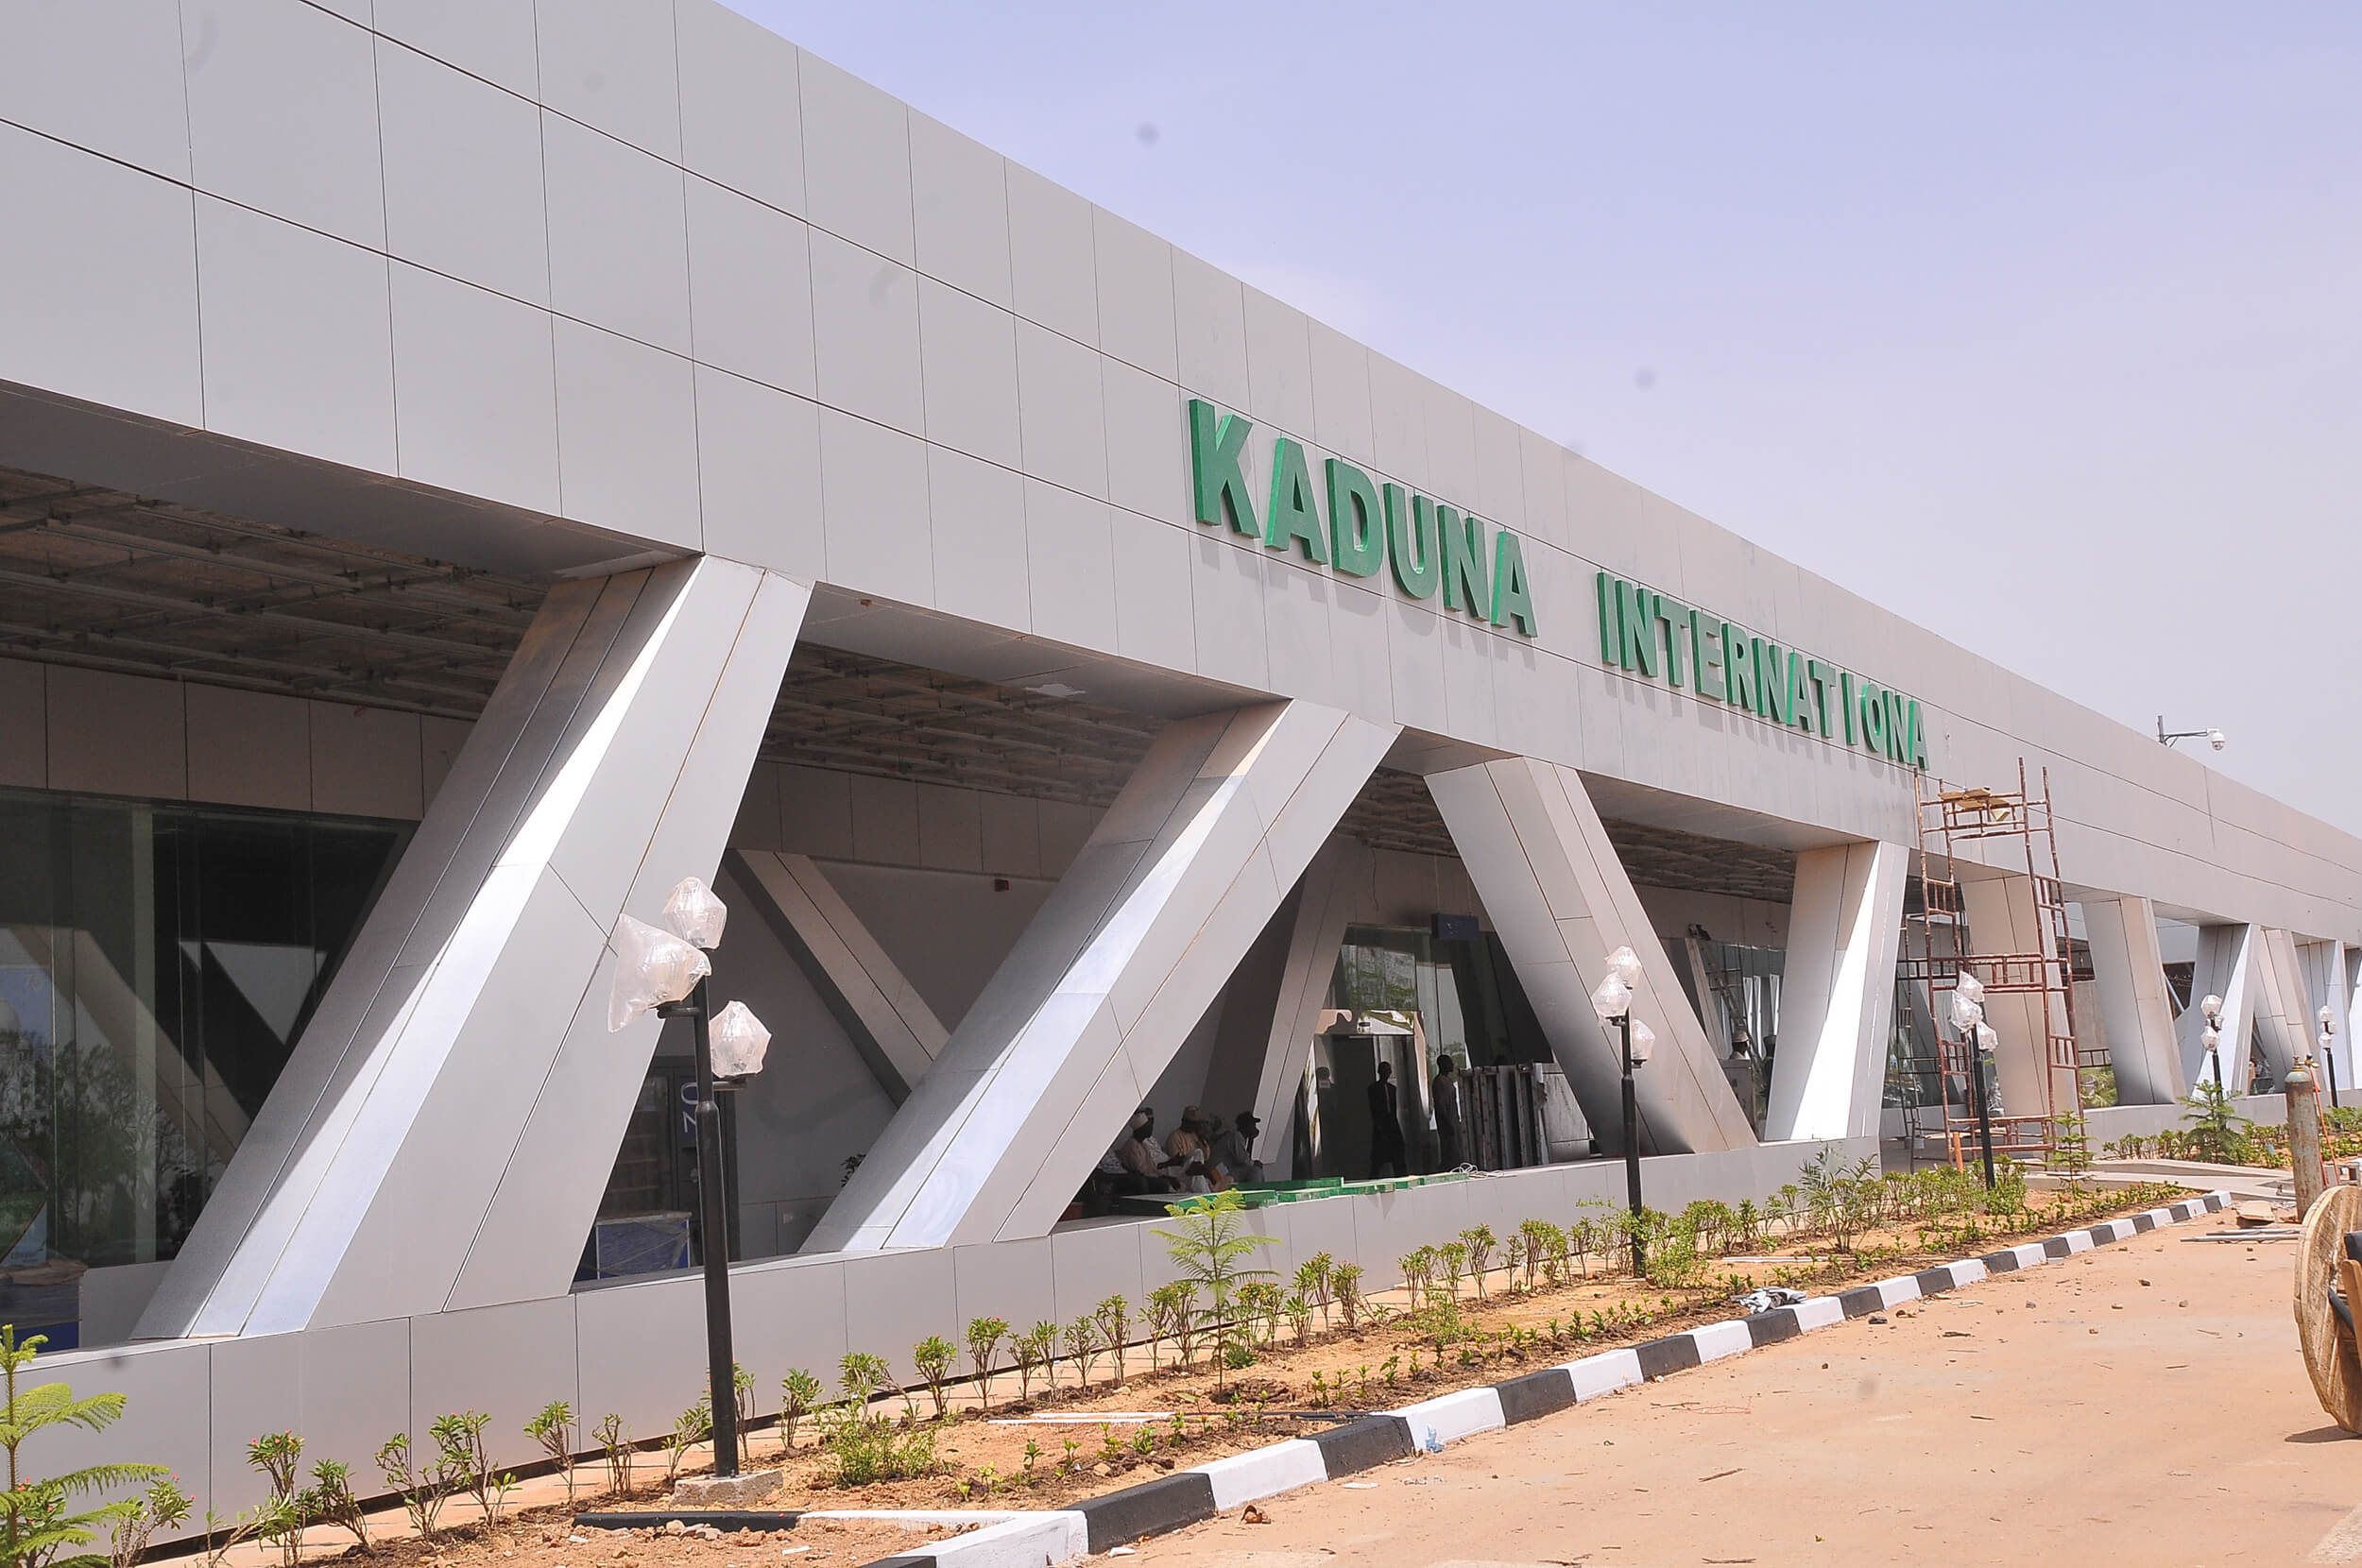 Kaduna International Airport - Kaduna to London Flights Will Commence Soon - FG